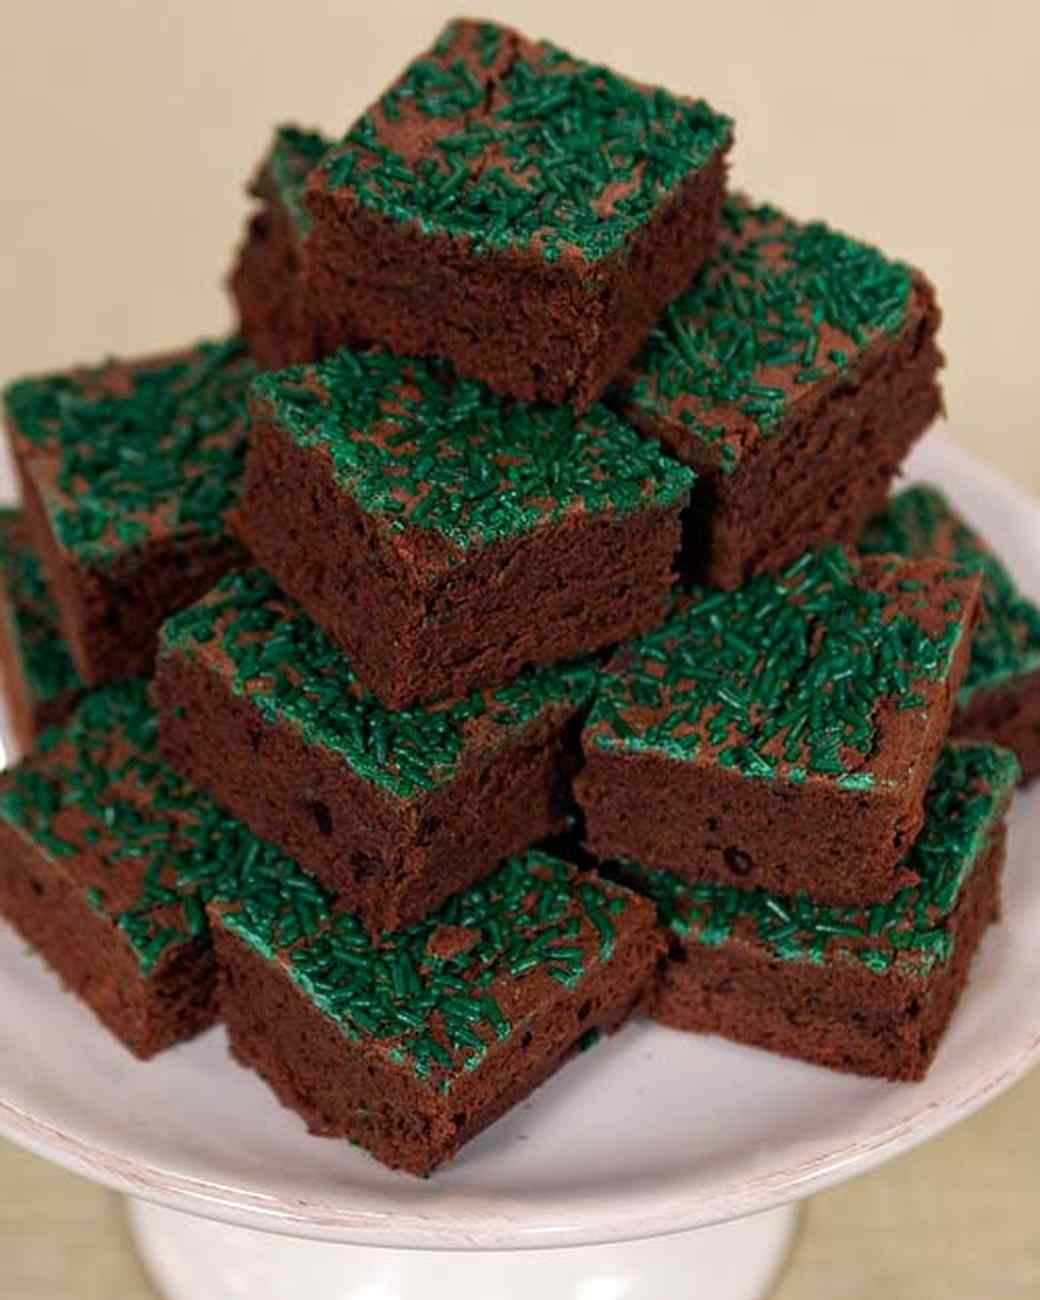 Fudgy Chocolate Brownies with Green Sprinkles Recipe & Video | Martha ...